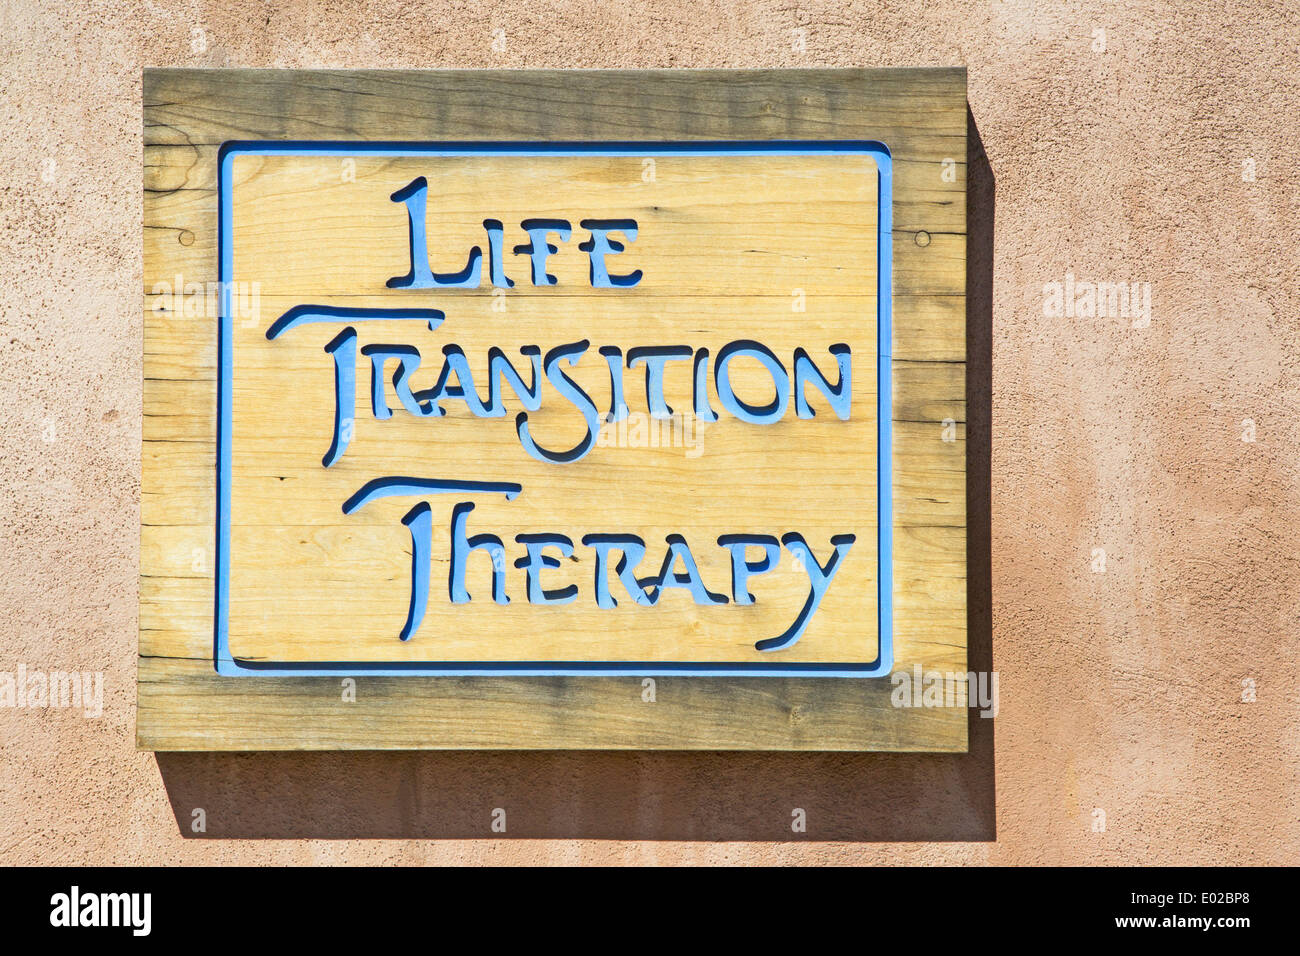 Life Transition Therapy sign - Stock Image